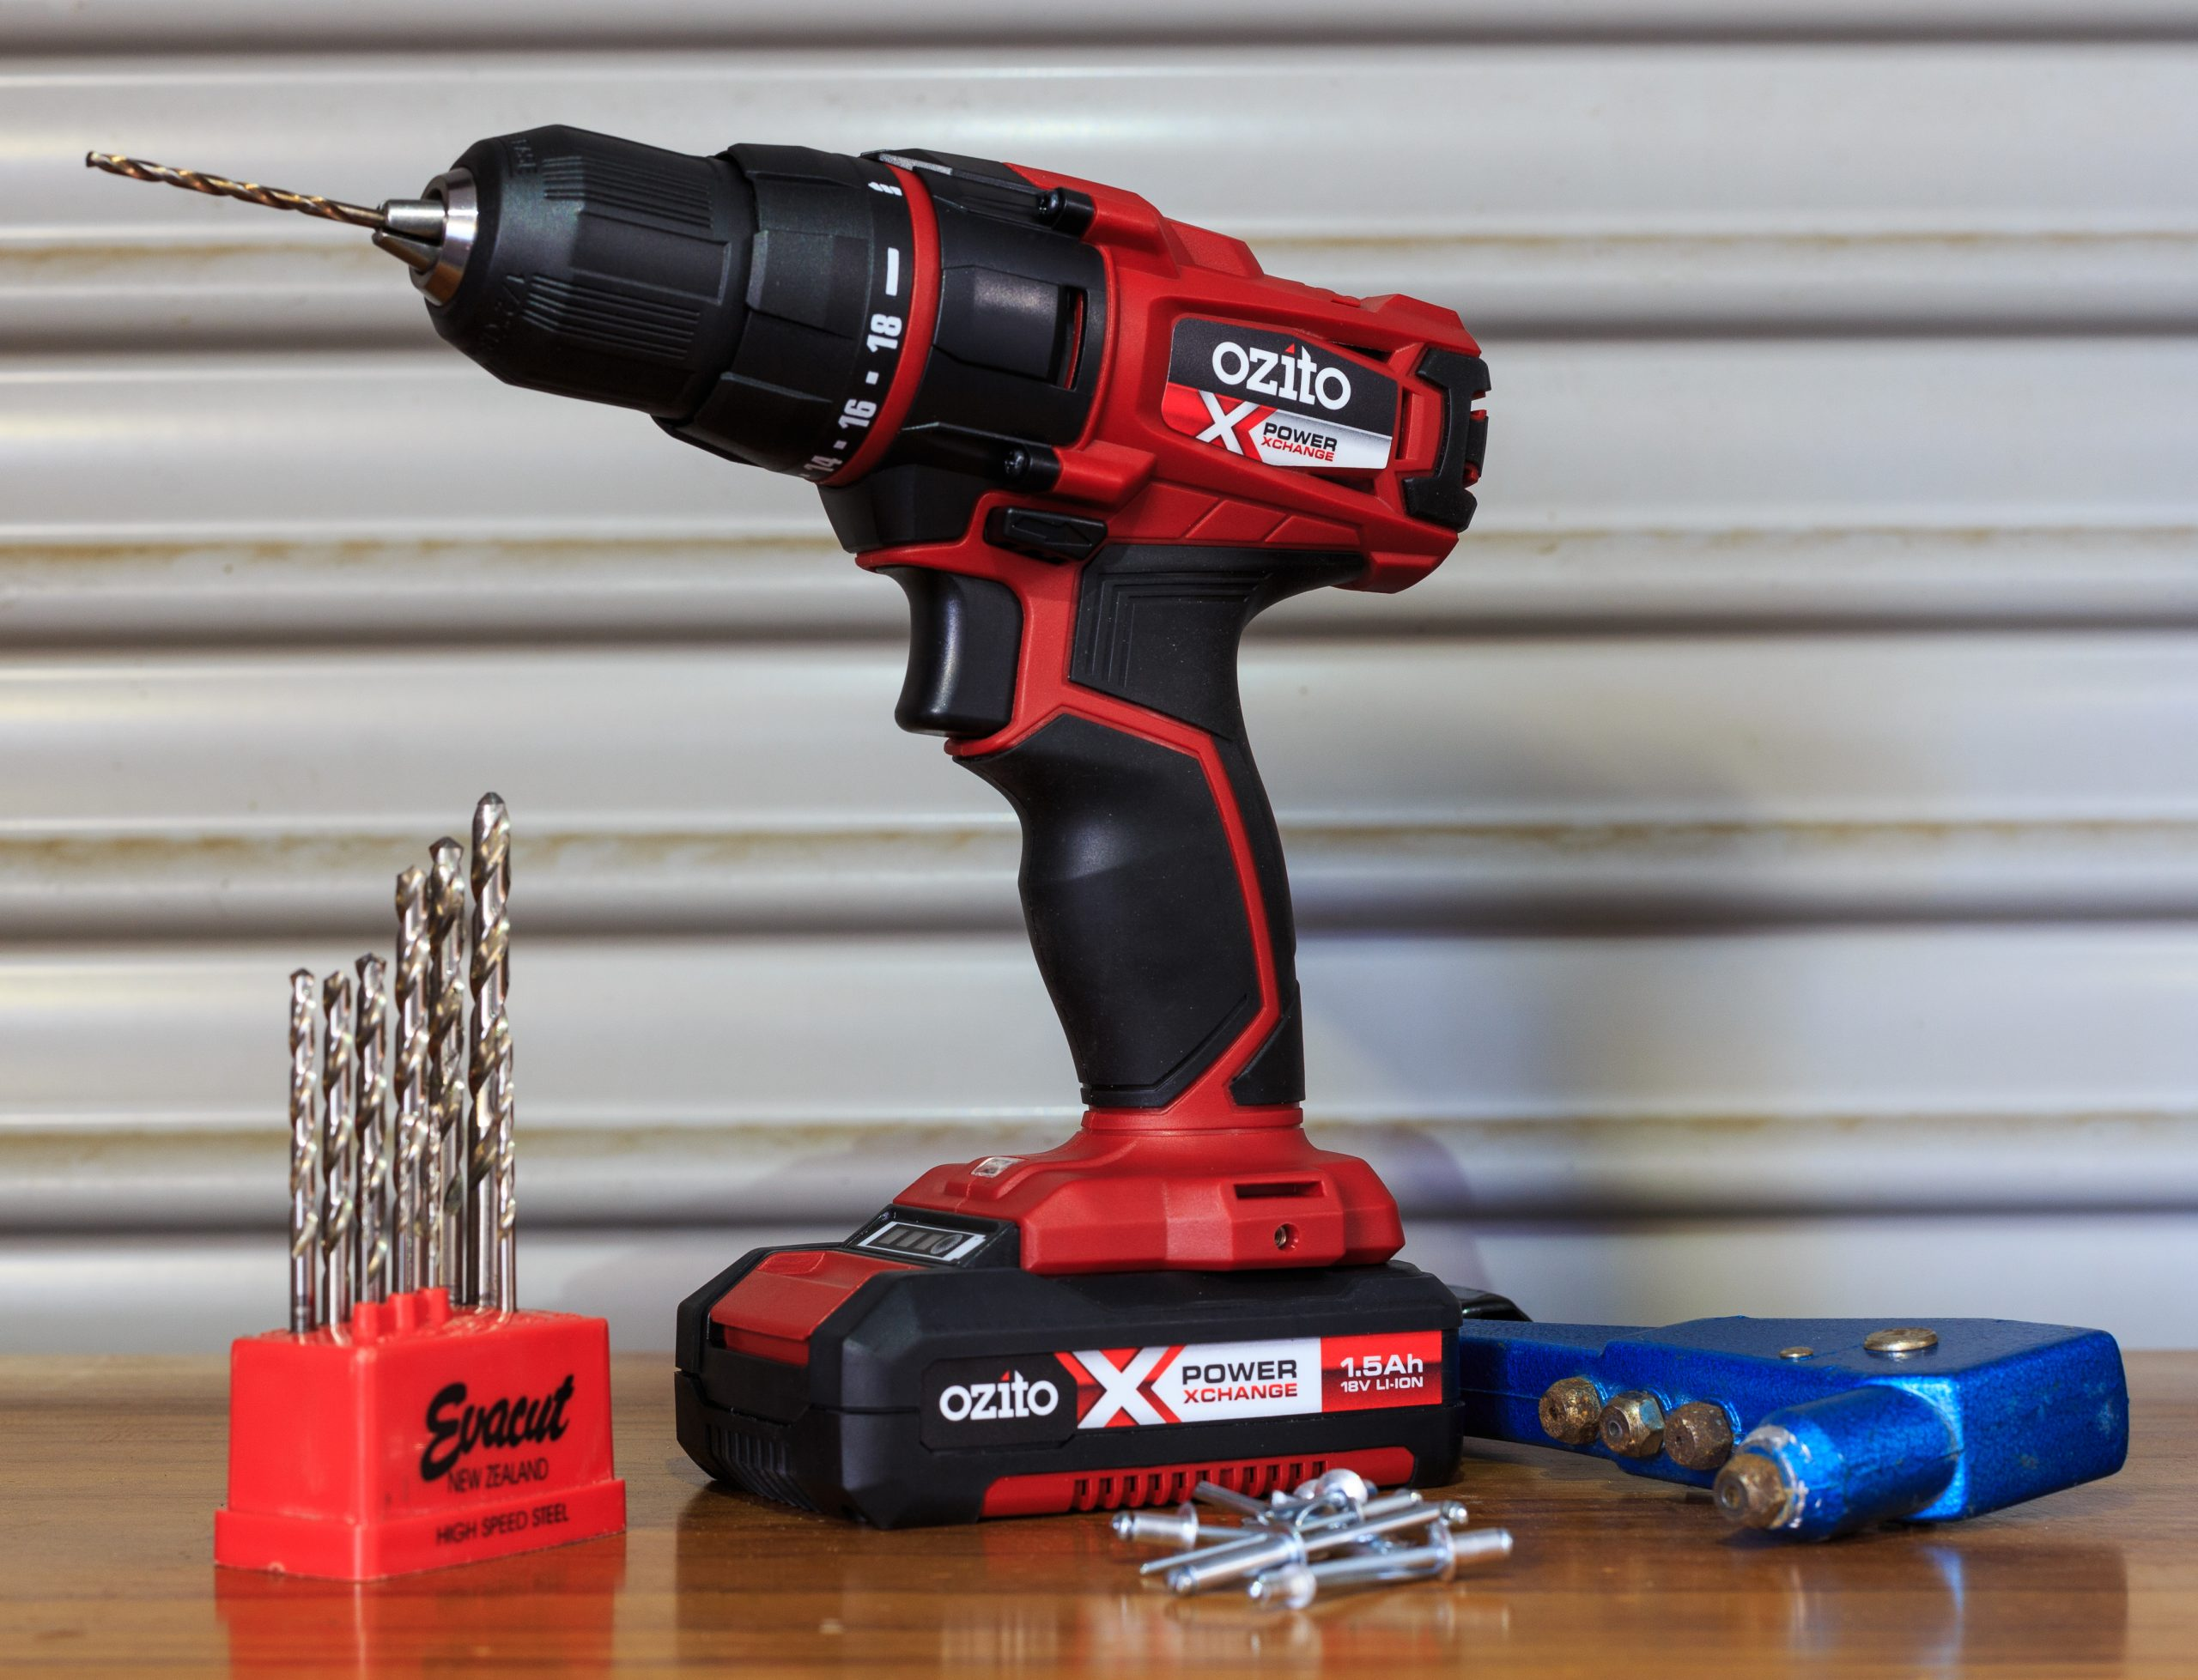 An 18V cordless drill is essential in your RV toolkit